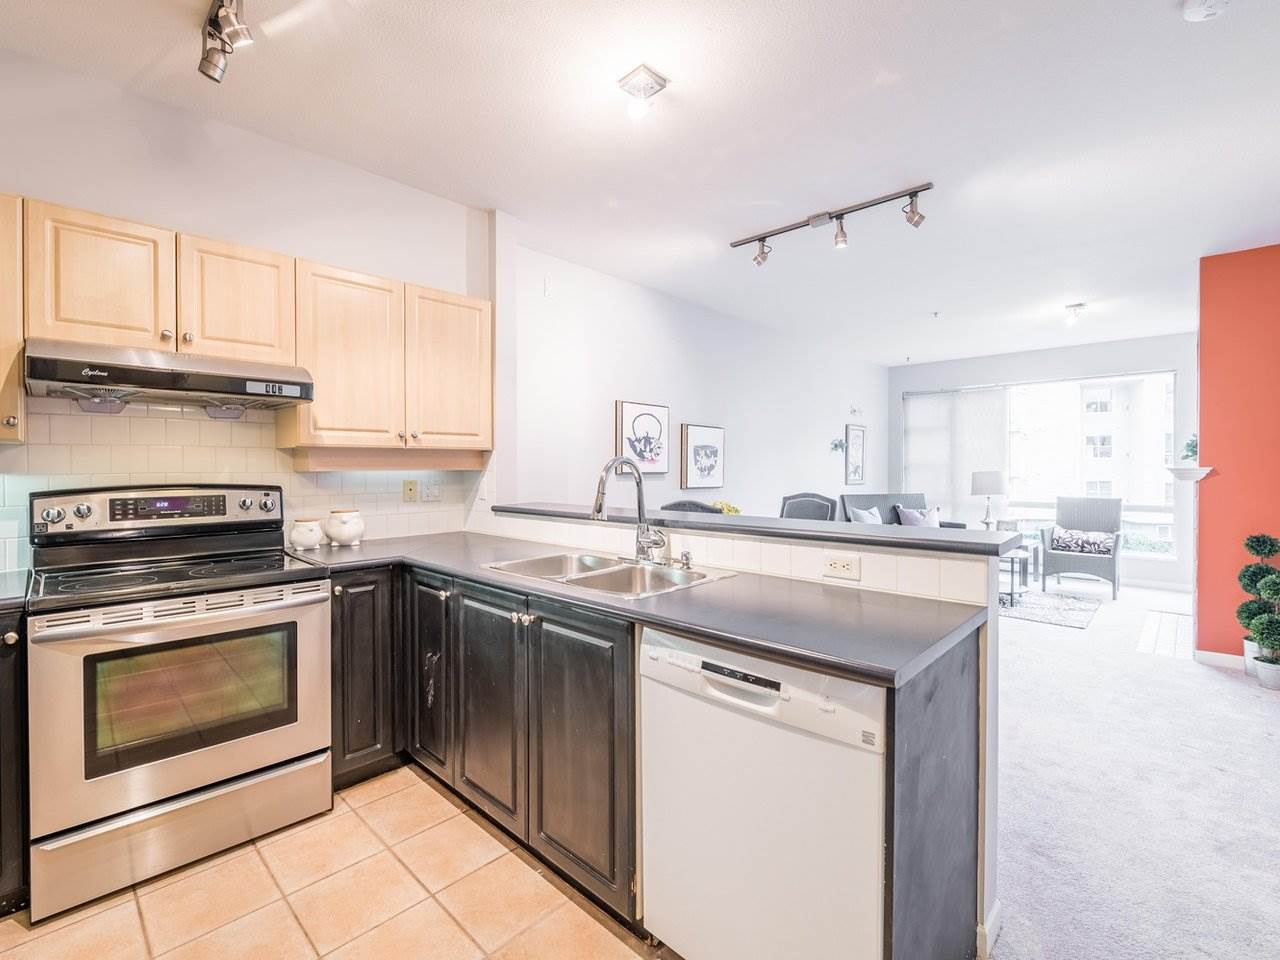 412 3629 DEERCREST DRIVE - Roche Point Apartment/Condo for sale, 1 Bedroom (R2525424) - #11